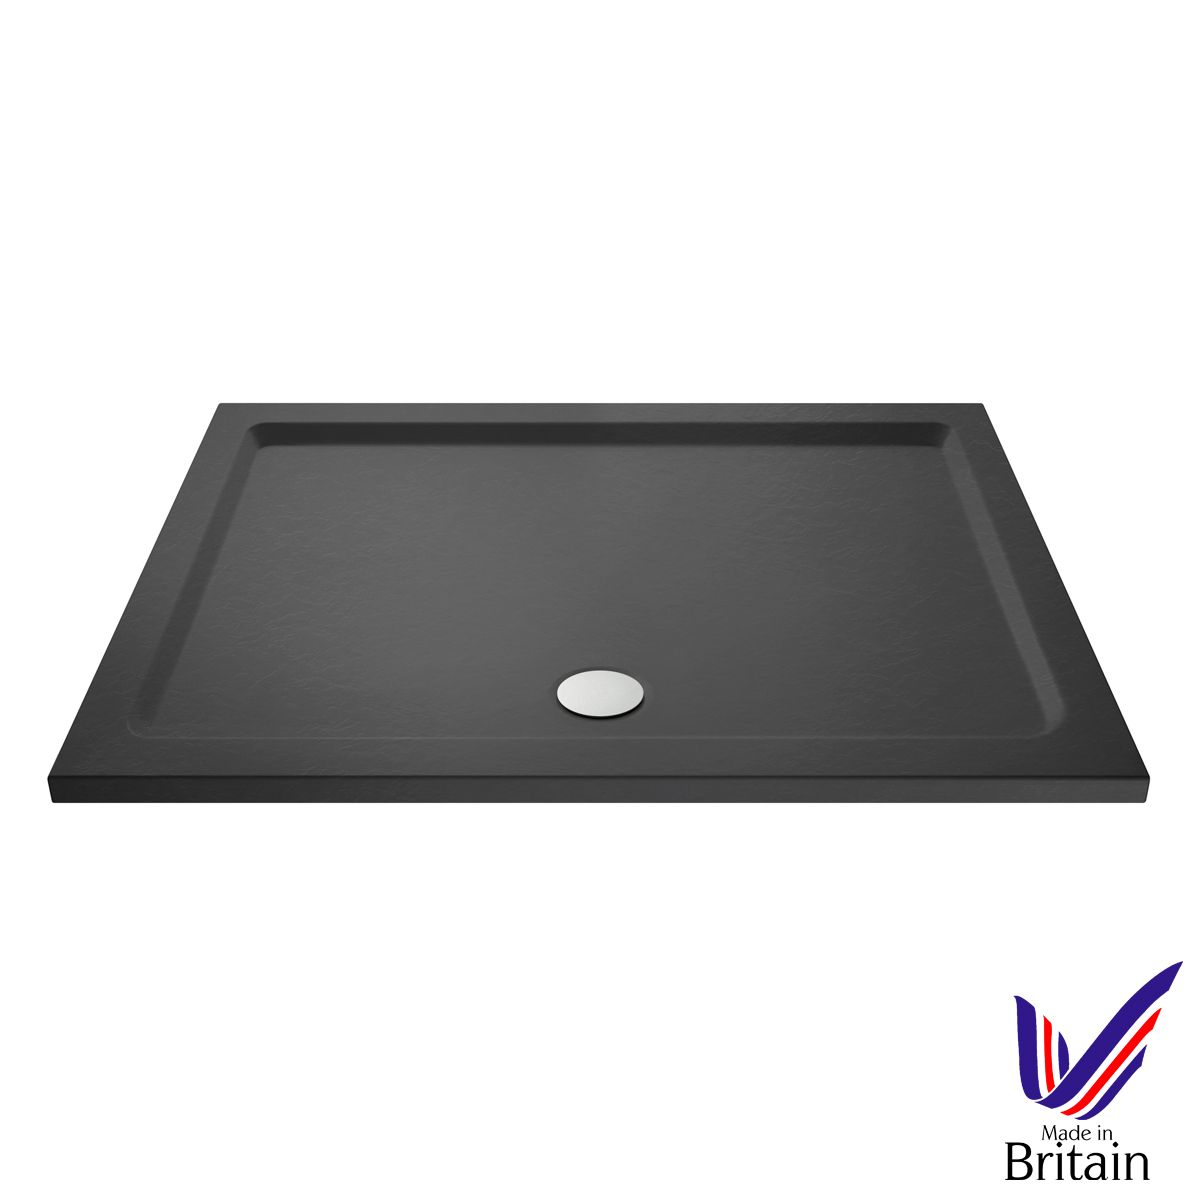 1500 x 700 Shower Tray Slate Grey Rectangular Low Profile by Pearlstone